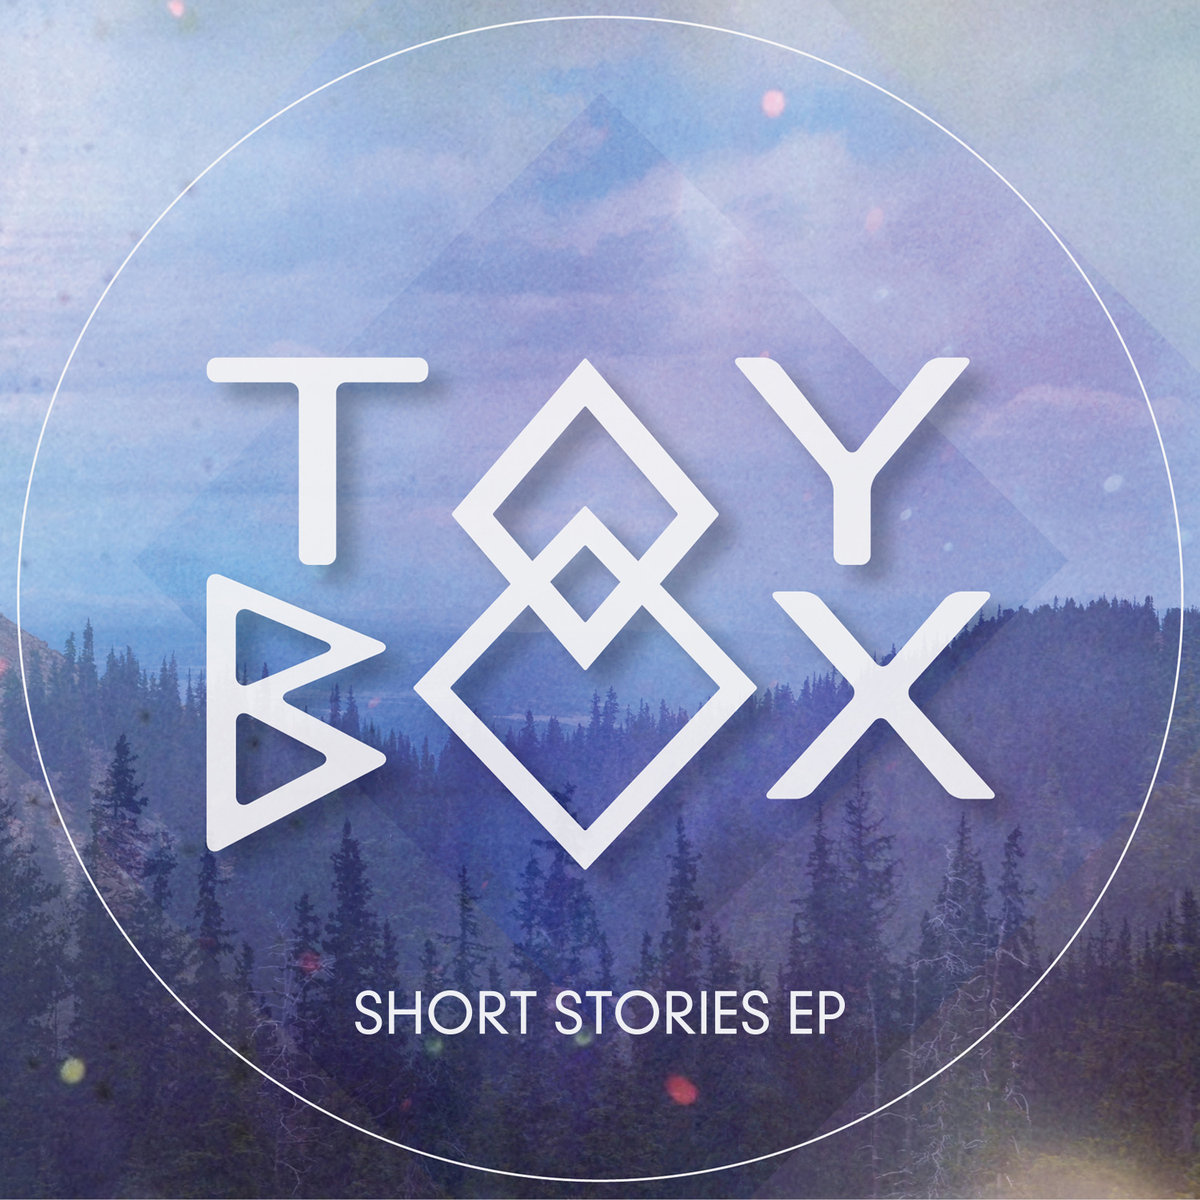 Toy Box - Short Stories @ 'Short Stories' album (alternative, bass)